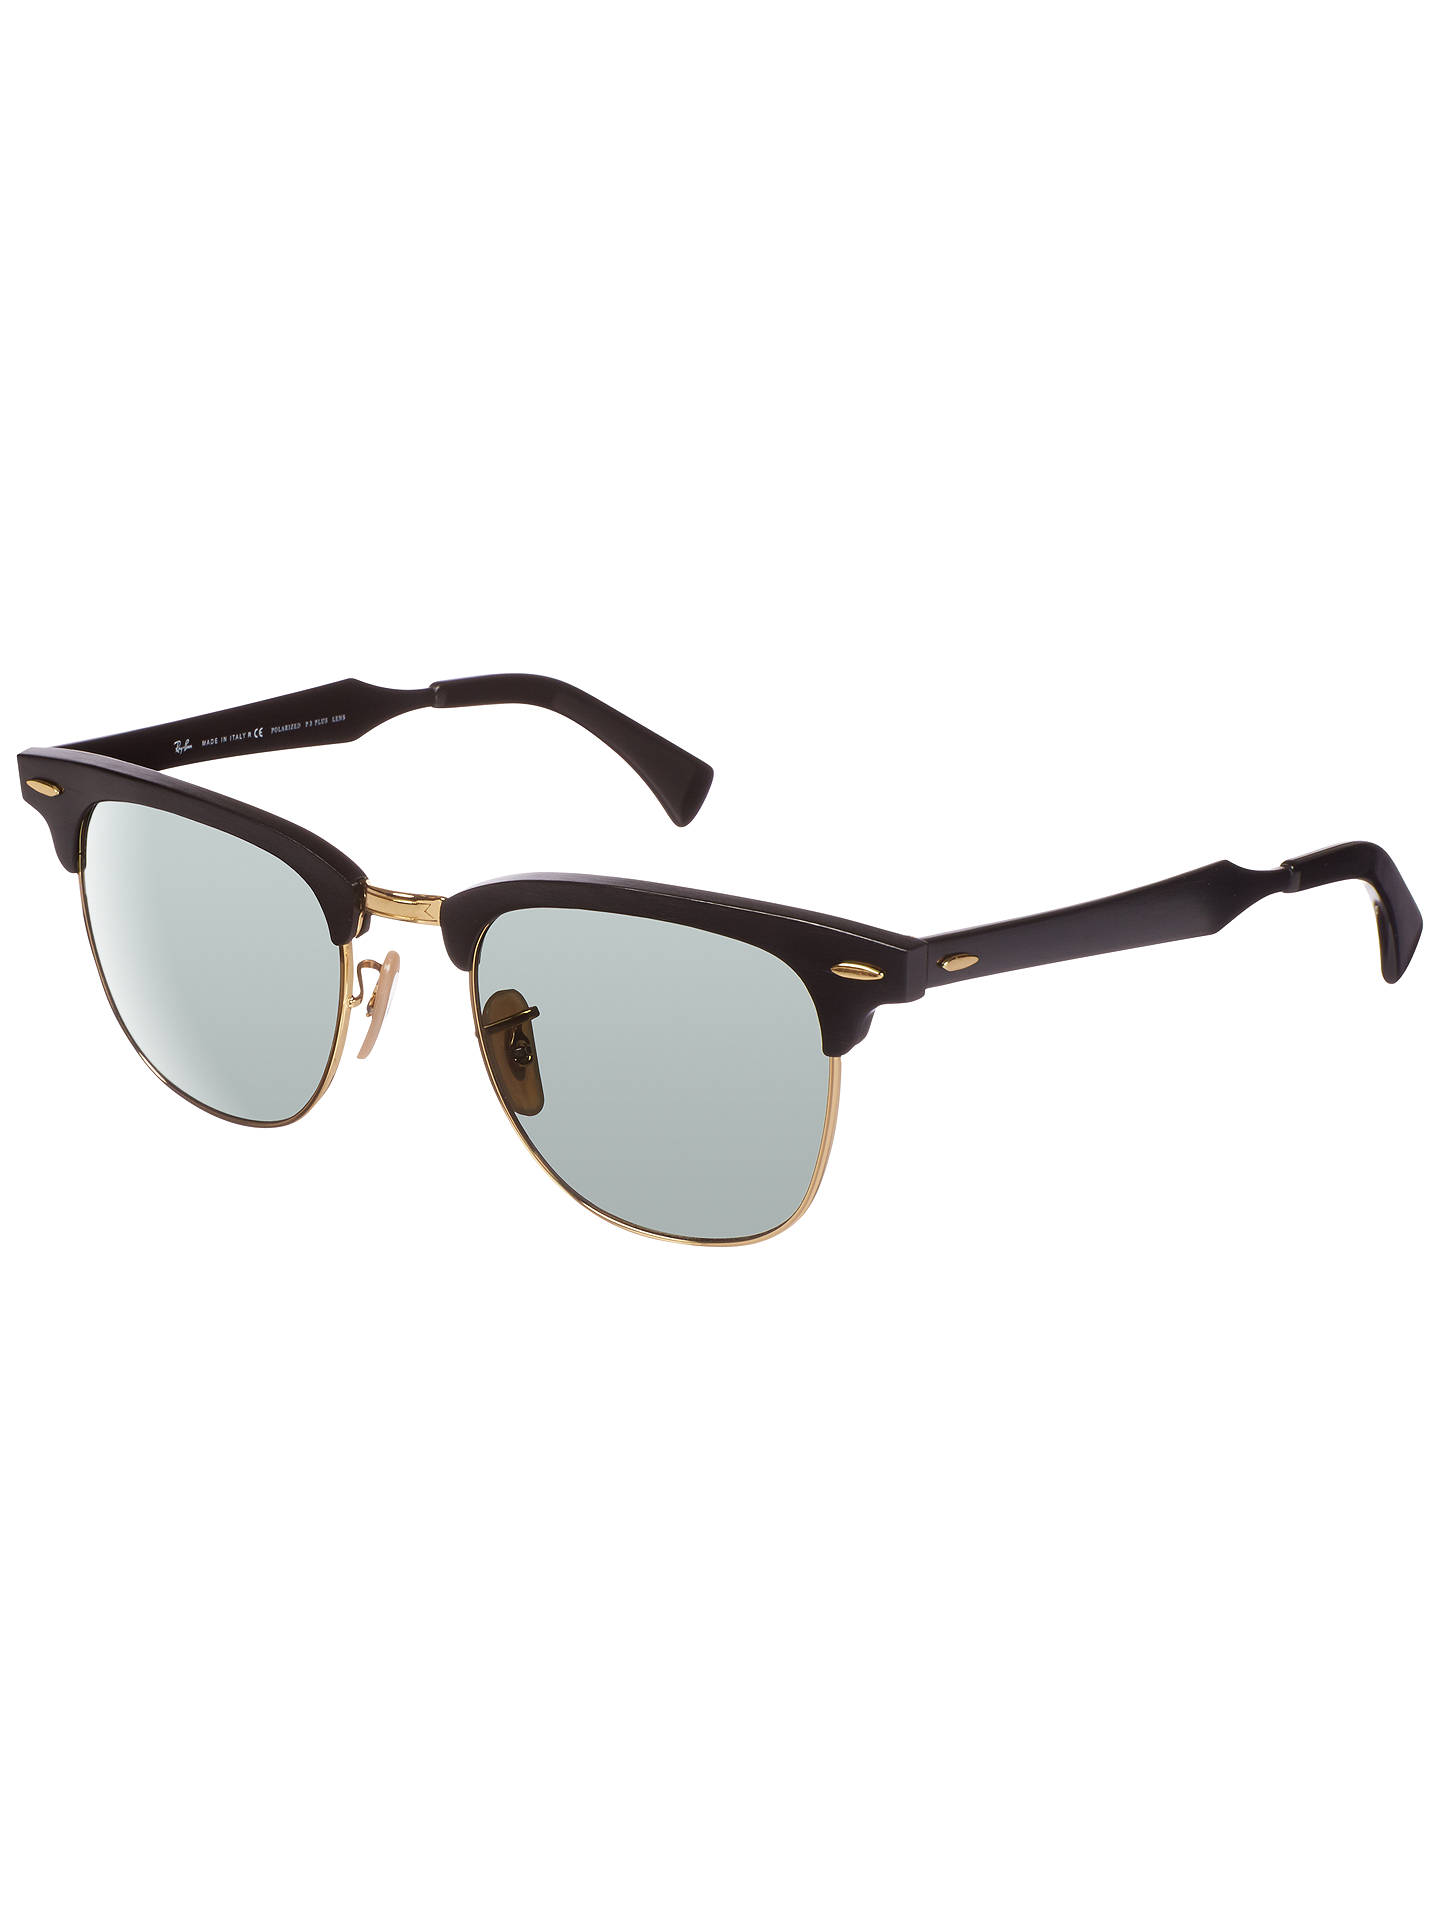 BuyRay-Ban RB3507 Clubmaster Polarised Sunglasses, Black Online at johnlewis.com